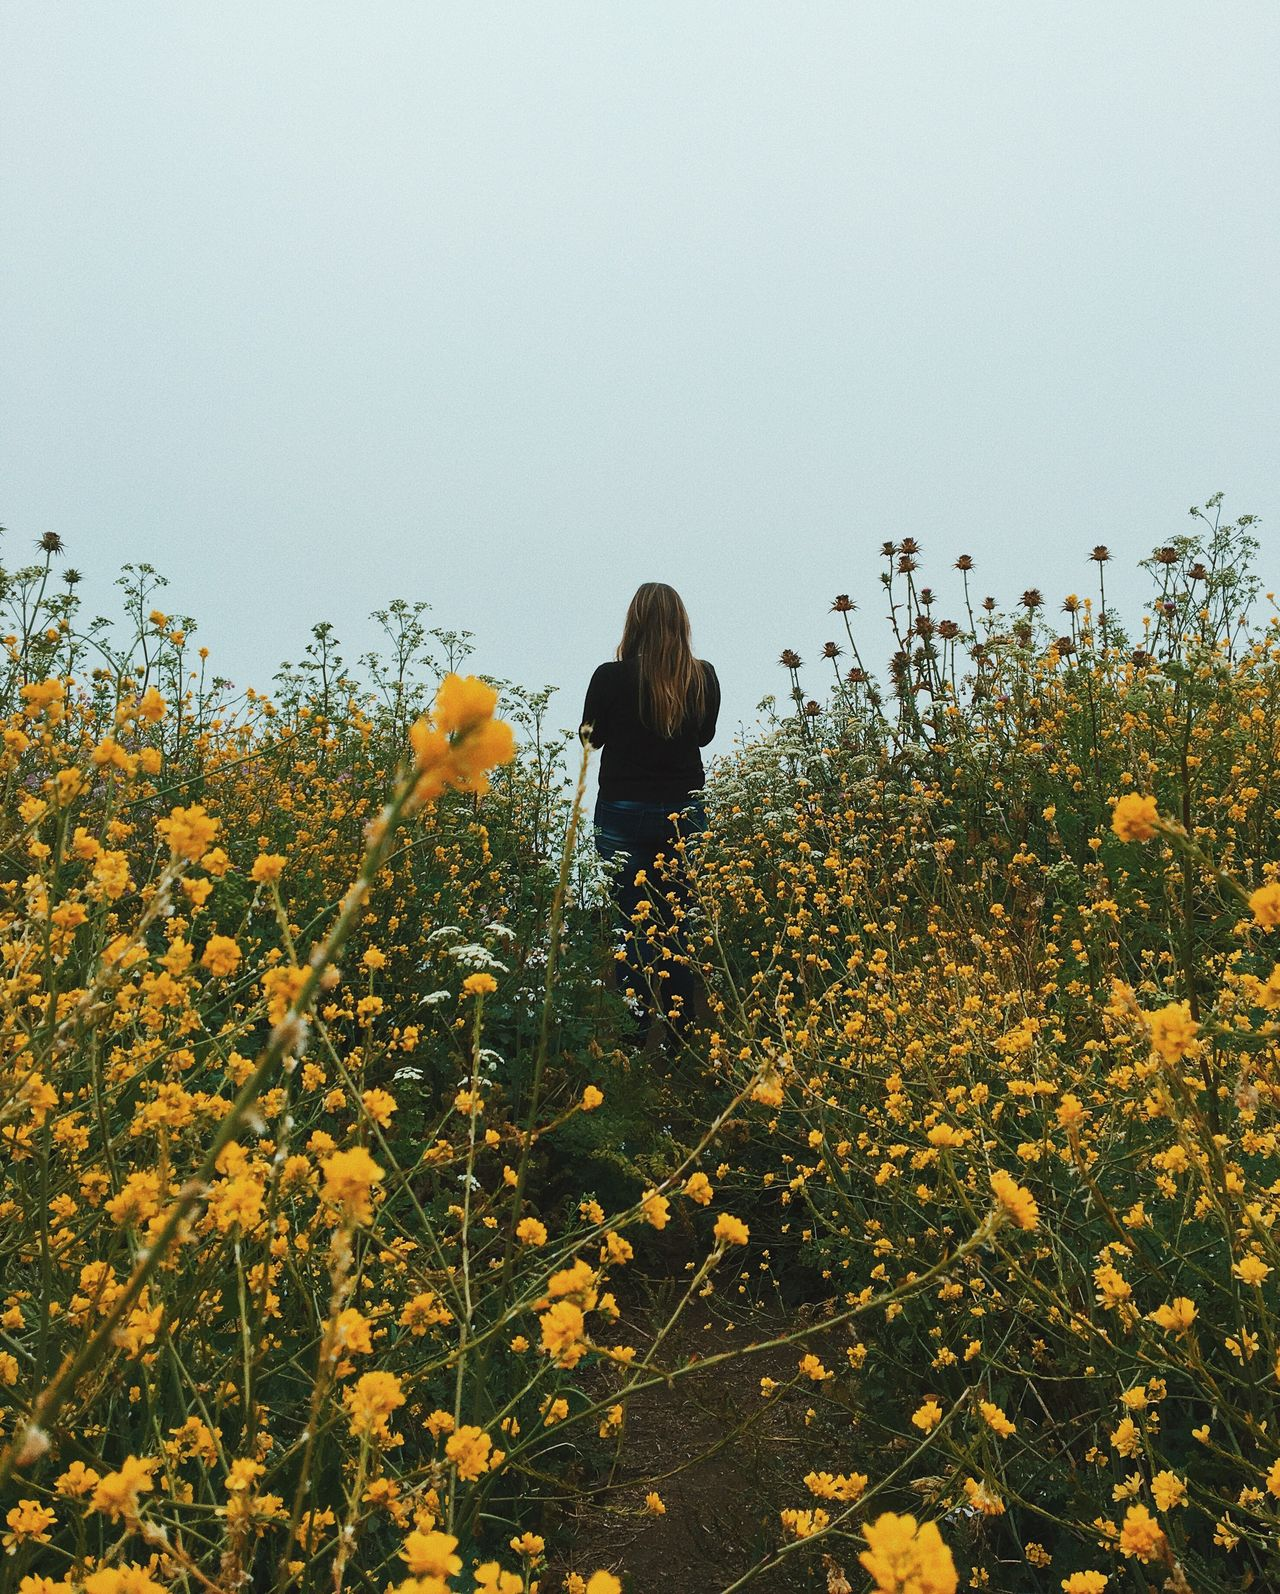 Secret Spaces Flower Growth Beauty In Nature Nature Rear View Field Lifestyles Clear Sky Outdoors Freshness Yellow Leisure Activity Plant Real People Blooming Fragility Sunflower Day Tree Scenics Long Goodbye TCPM